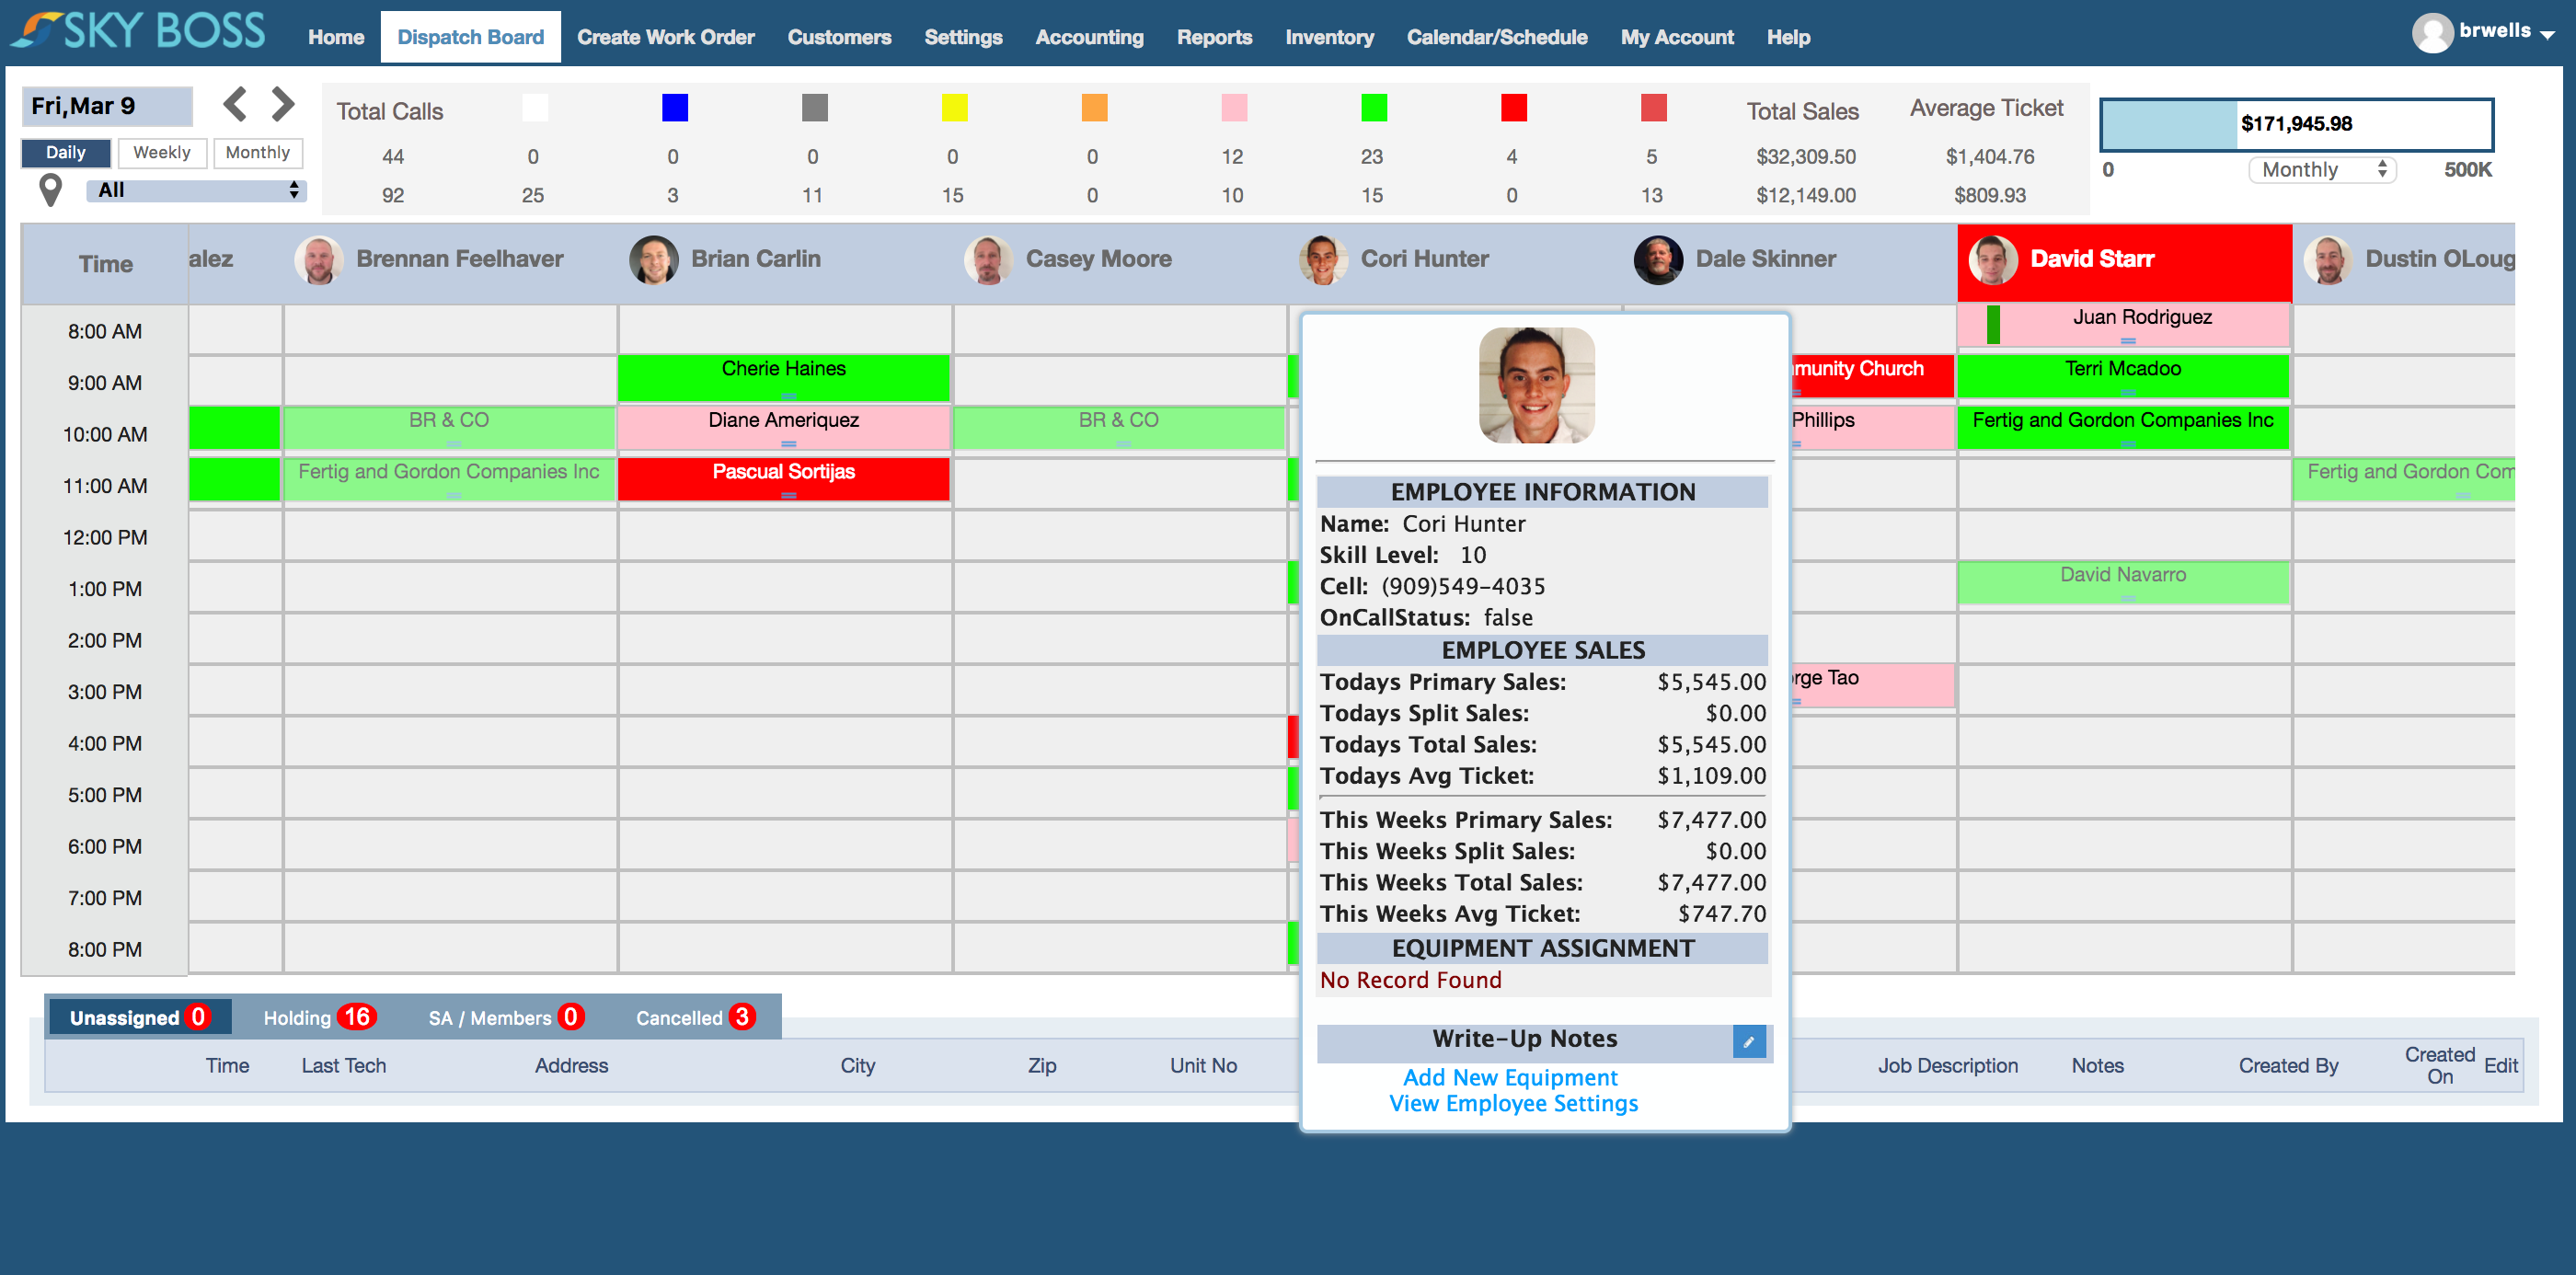 A flexible drag and drop calendar is color-coded to give an overview of upcoming scheduling at a glance